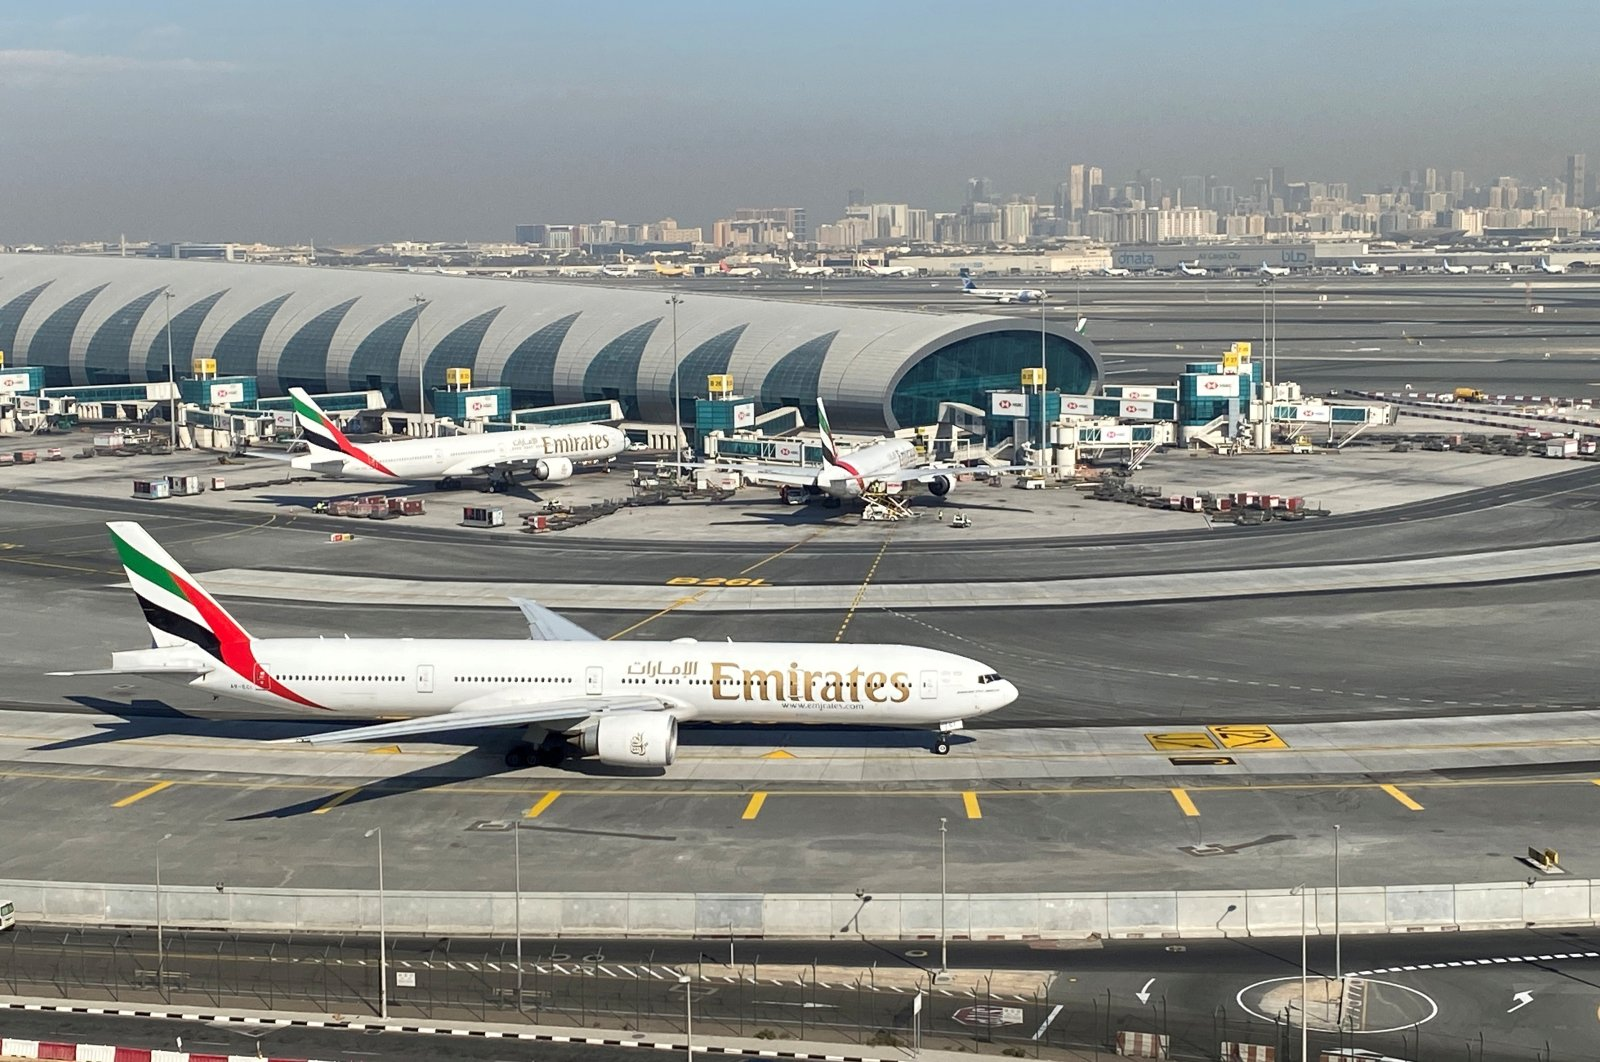 Emirates airplanes are seen on the tarmac in a general view of Dubai International Airport in Dubai, United Arab Emirates, Jan. 13, 2021. (Reuters Photo)